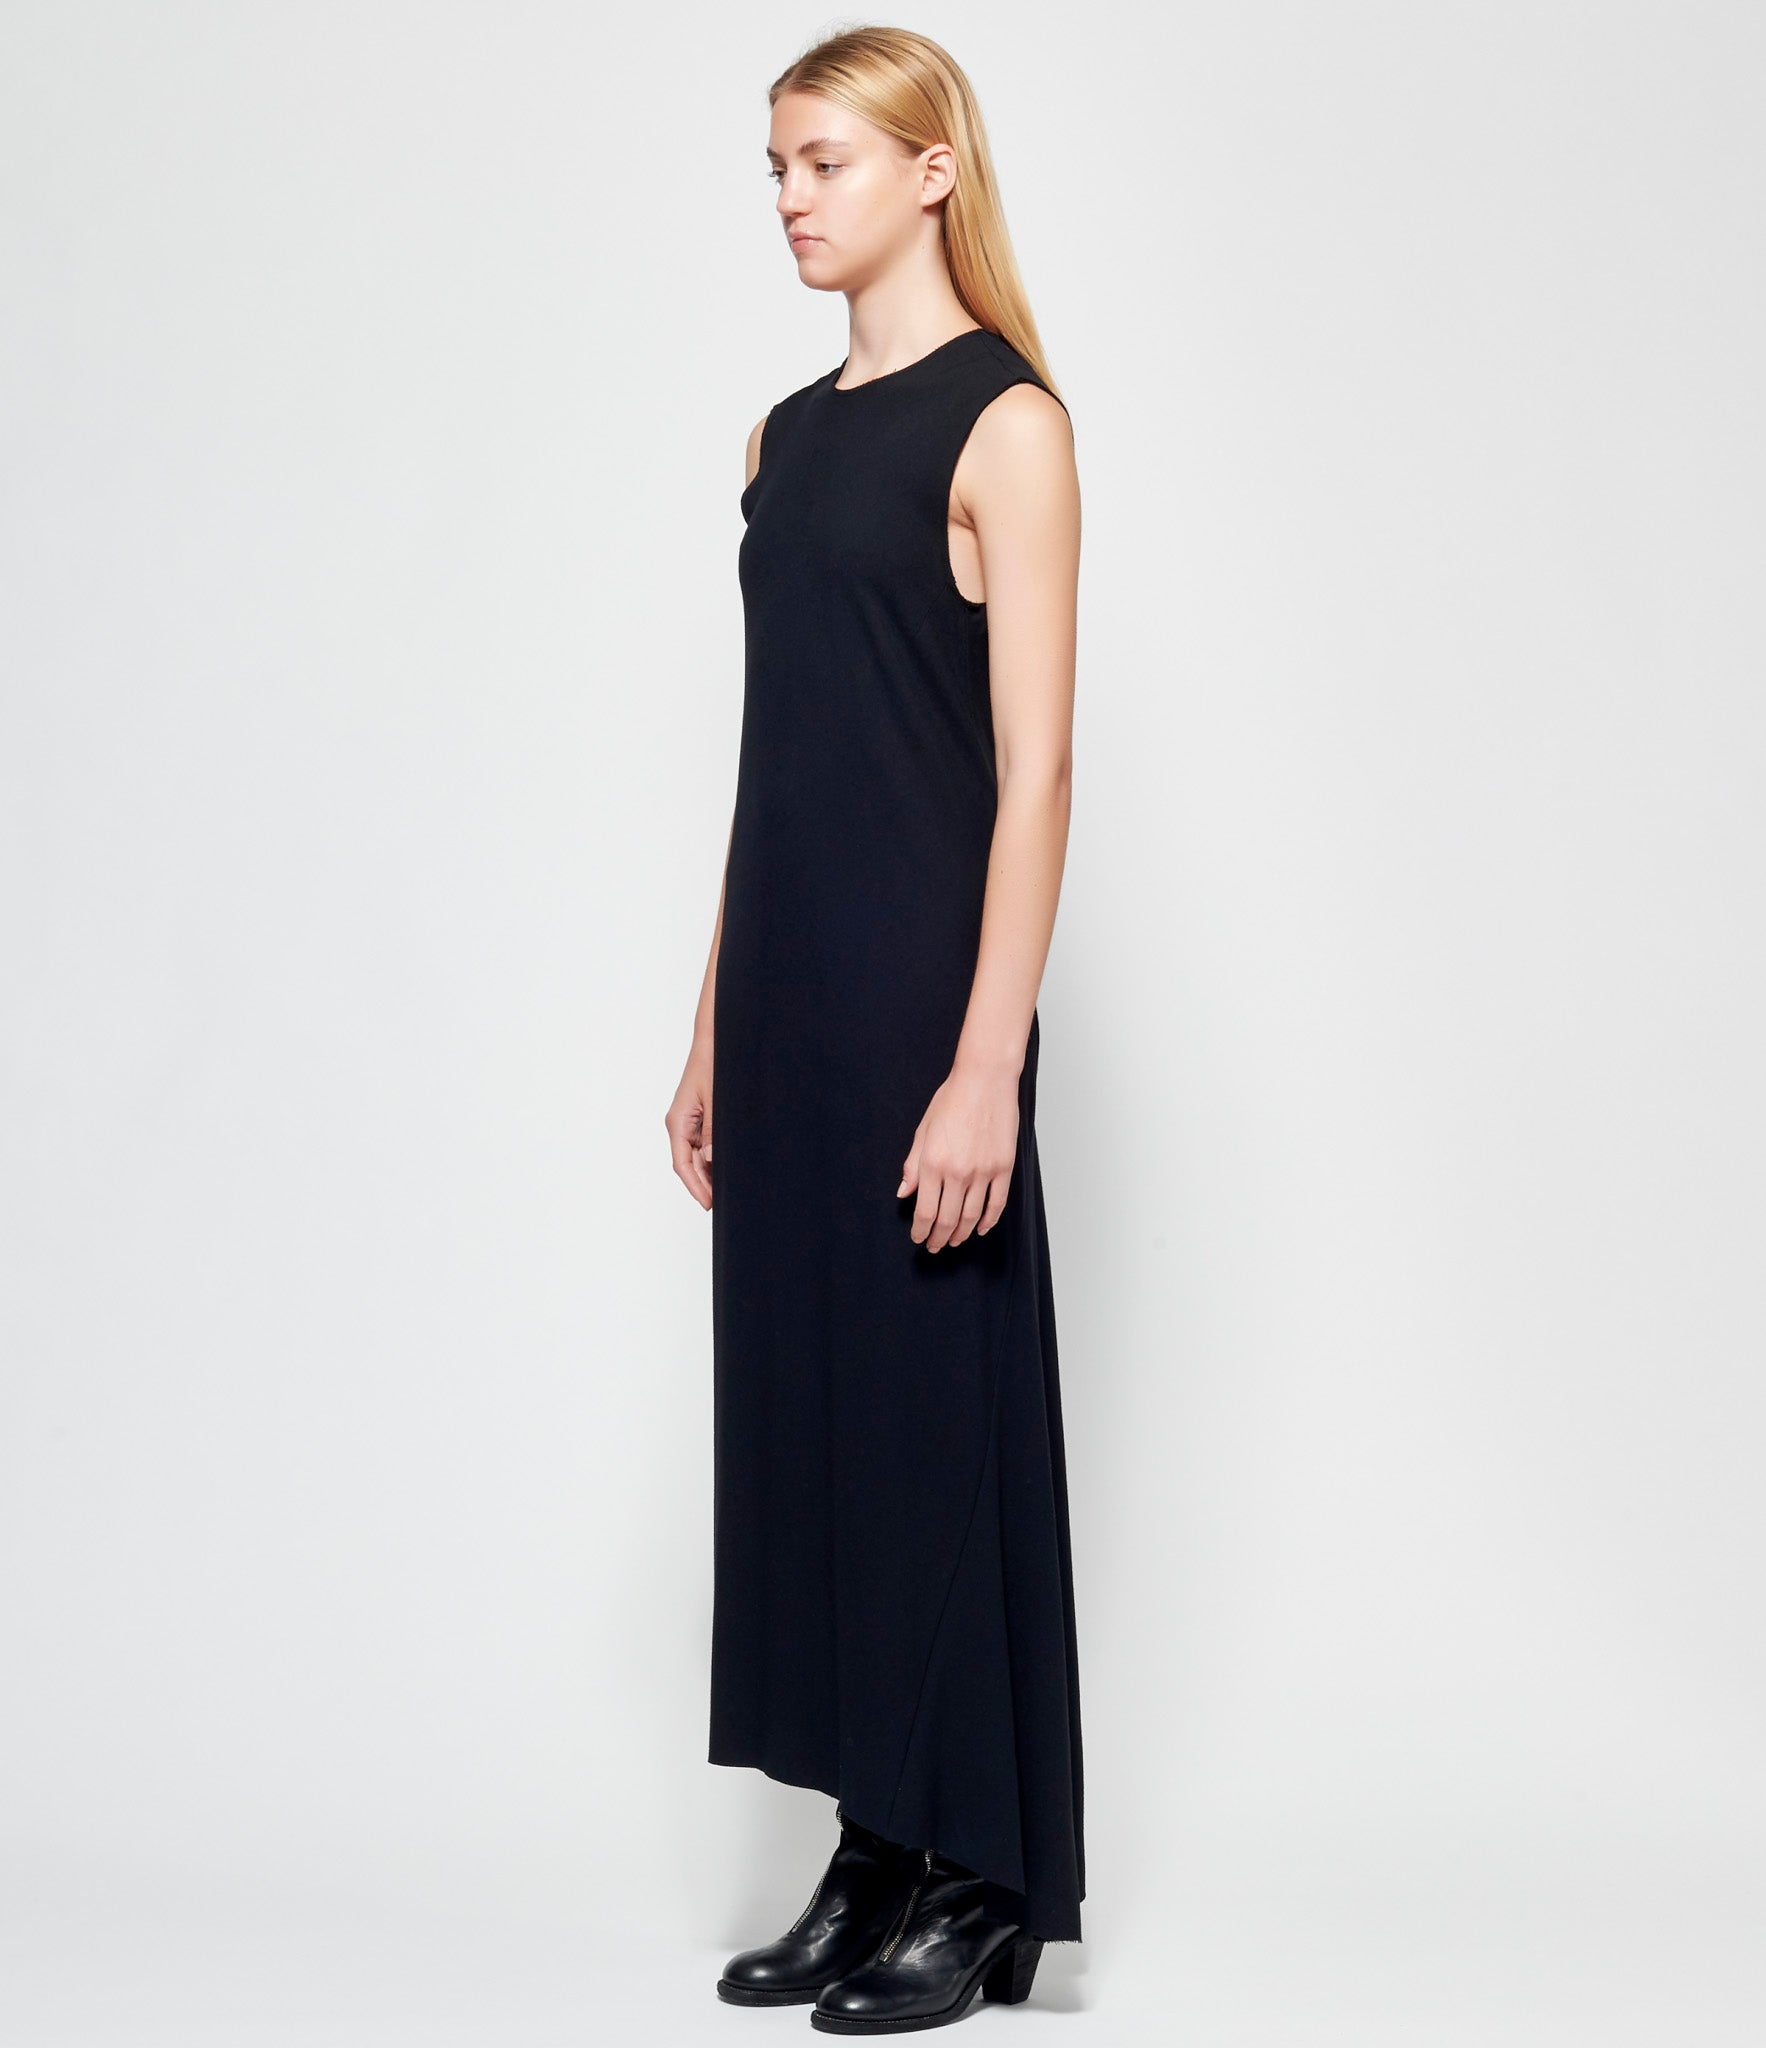 Ann Demeulemeester Jasmin Black Dress